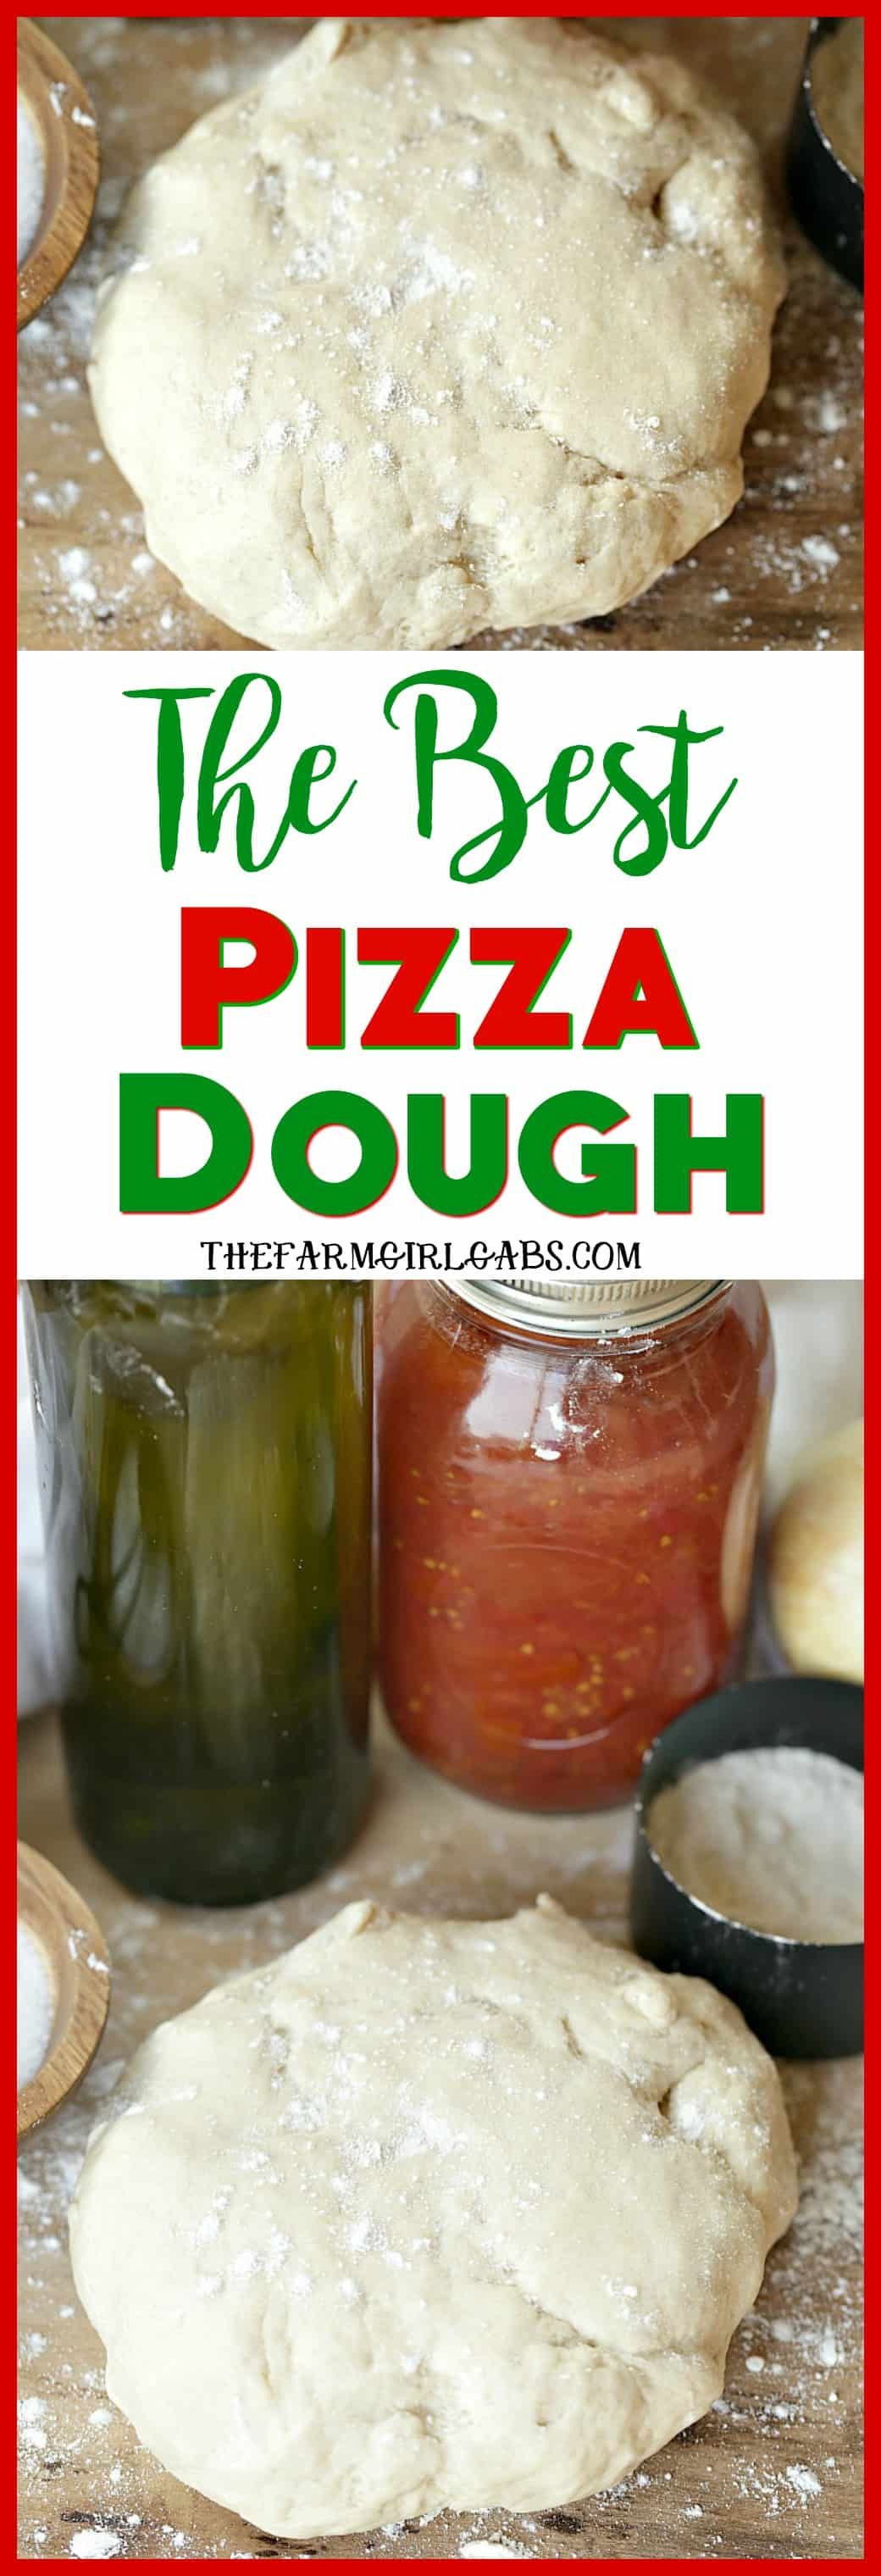 With a few simple ingredients, the Best Pizza Dough recipe is perfect for pizza night in your home! #pizza #pizzadough #recipe #maindish #snacks